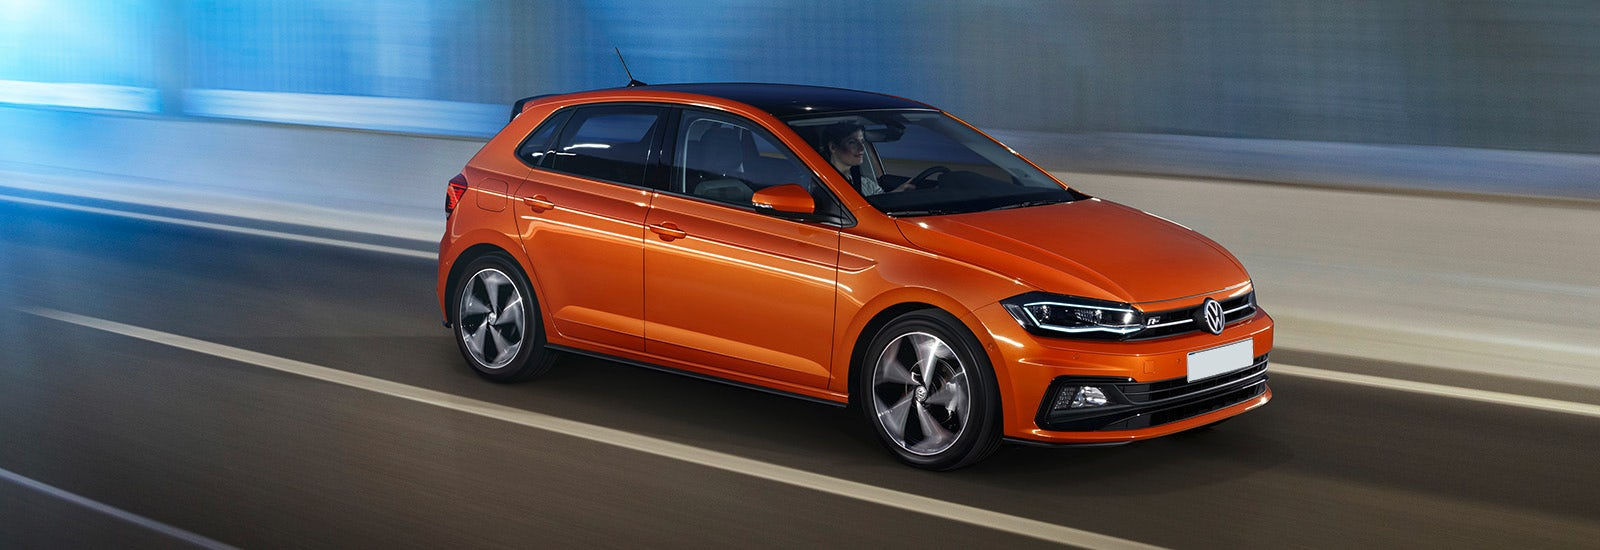 Volkswagen polo vivo facelift revealed - 2018 Volkswagen Polo Price And Release Date